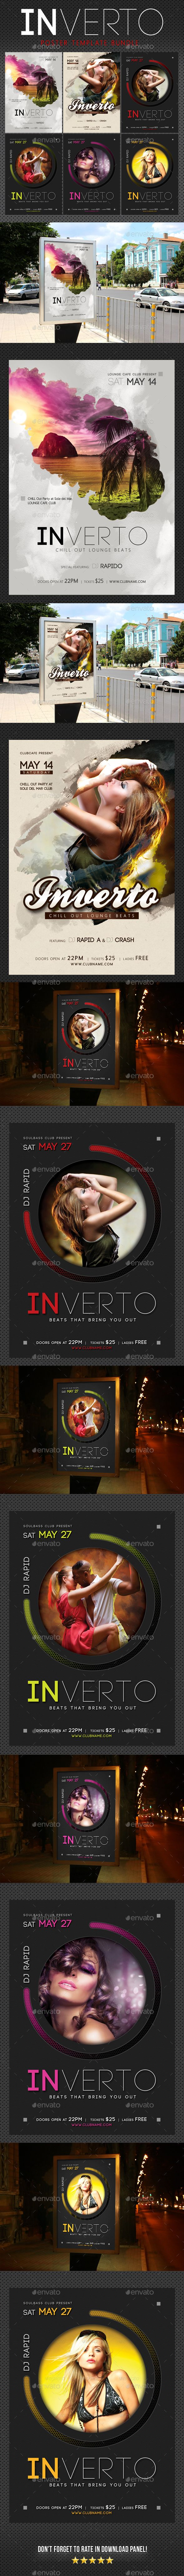 3 Inverto Music Poster Bundle by rapidgraf 3 High impact Poster Template Layouts, perfect for any music event. PSD files, CMYK, 300 dpi and ready for print. Save your time a